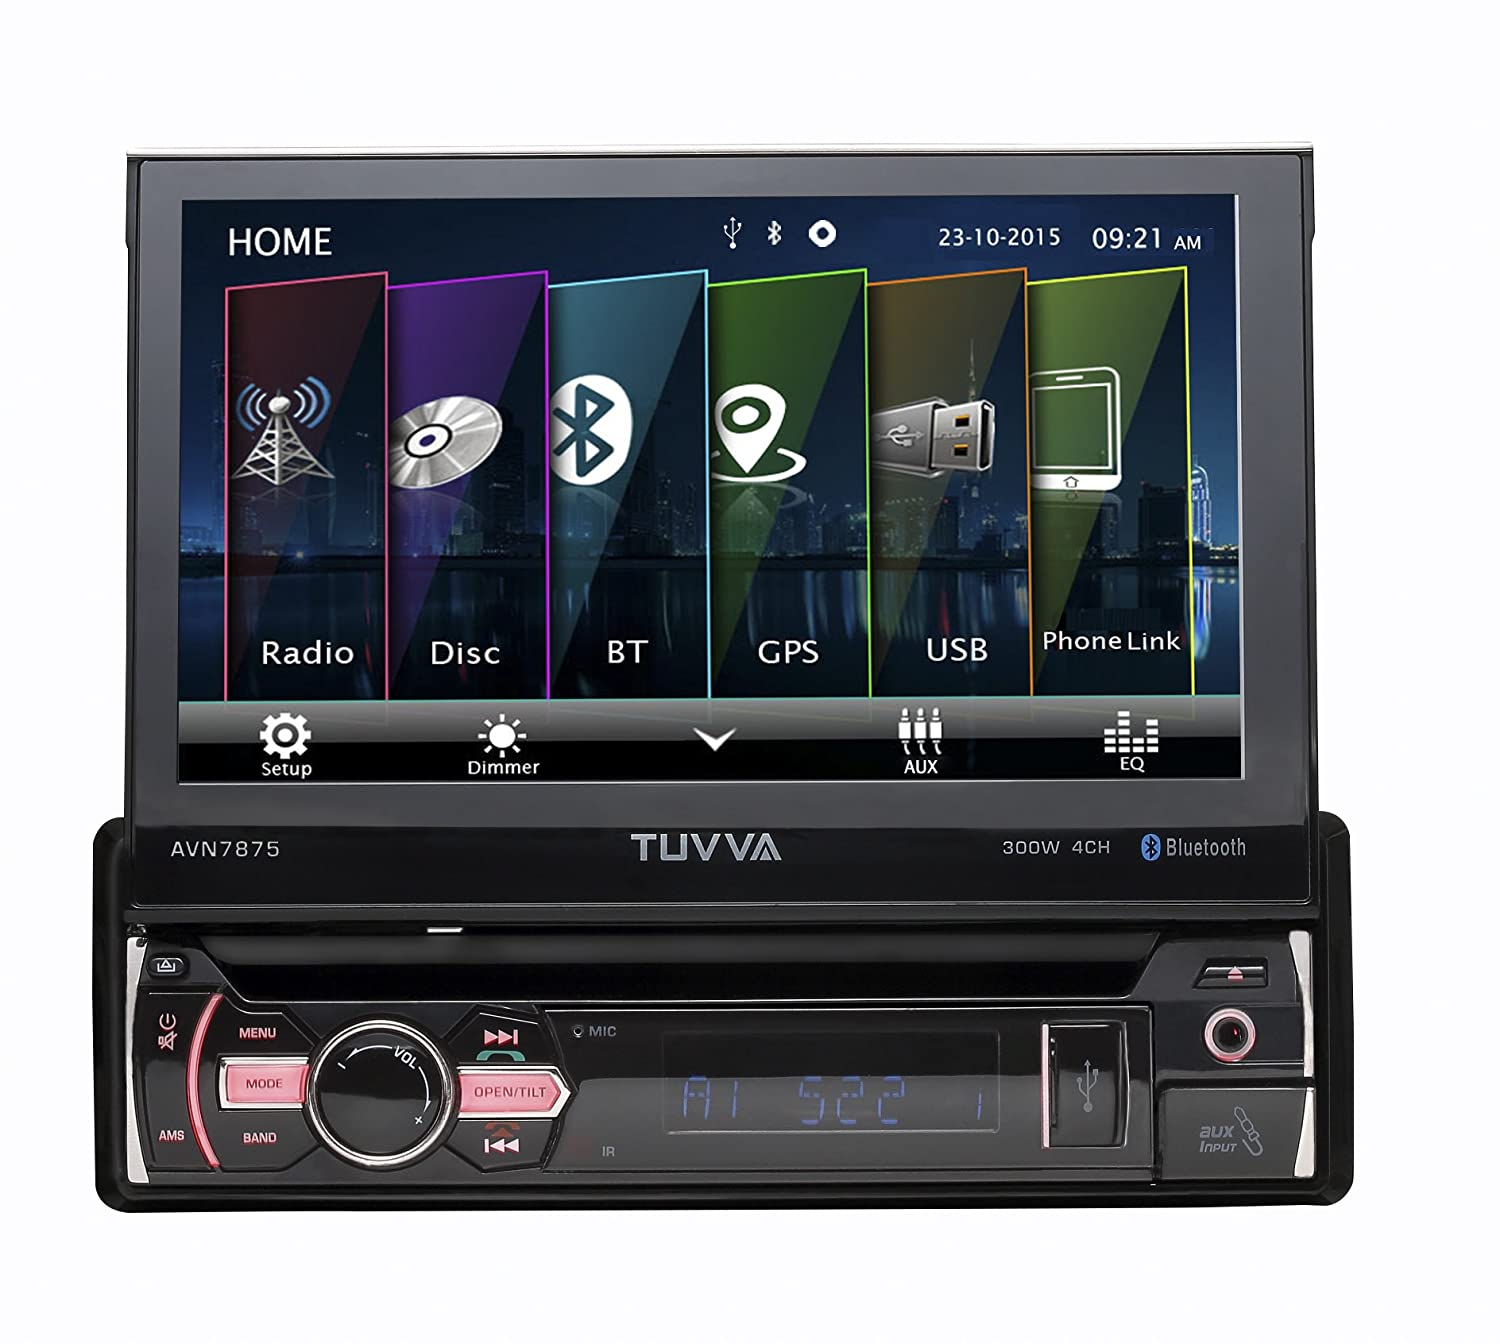 TUVVA 7' Sinle DIN Car Stereo Touch Screen GPS Navigation, DVD/ CD/ USB/ AUX-IN/ PhoneLink/ RDS/ Remote Control AVN7875